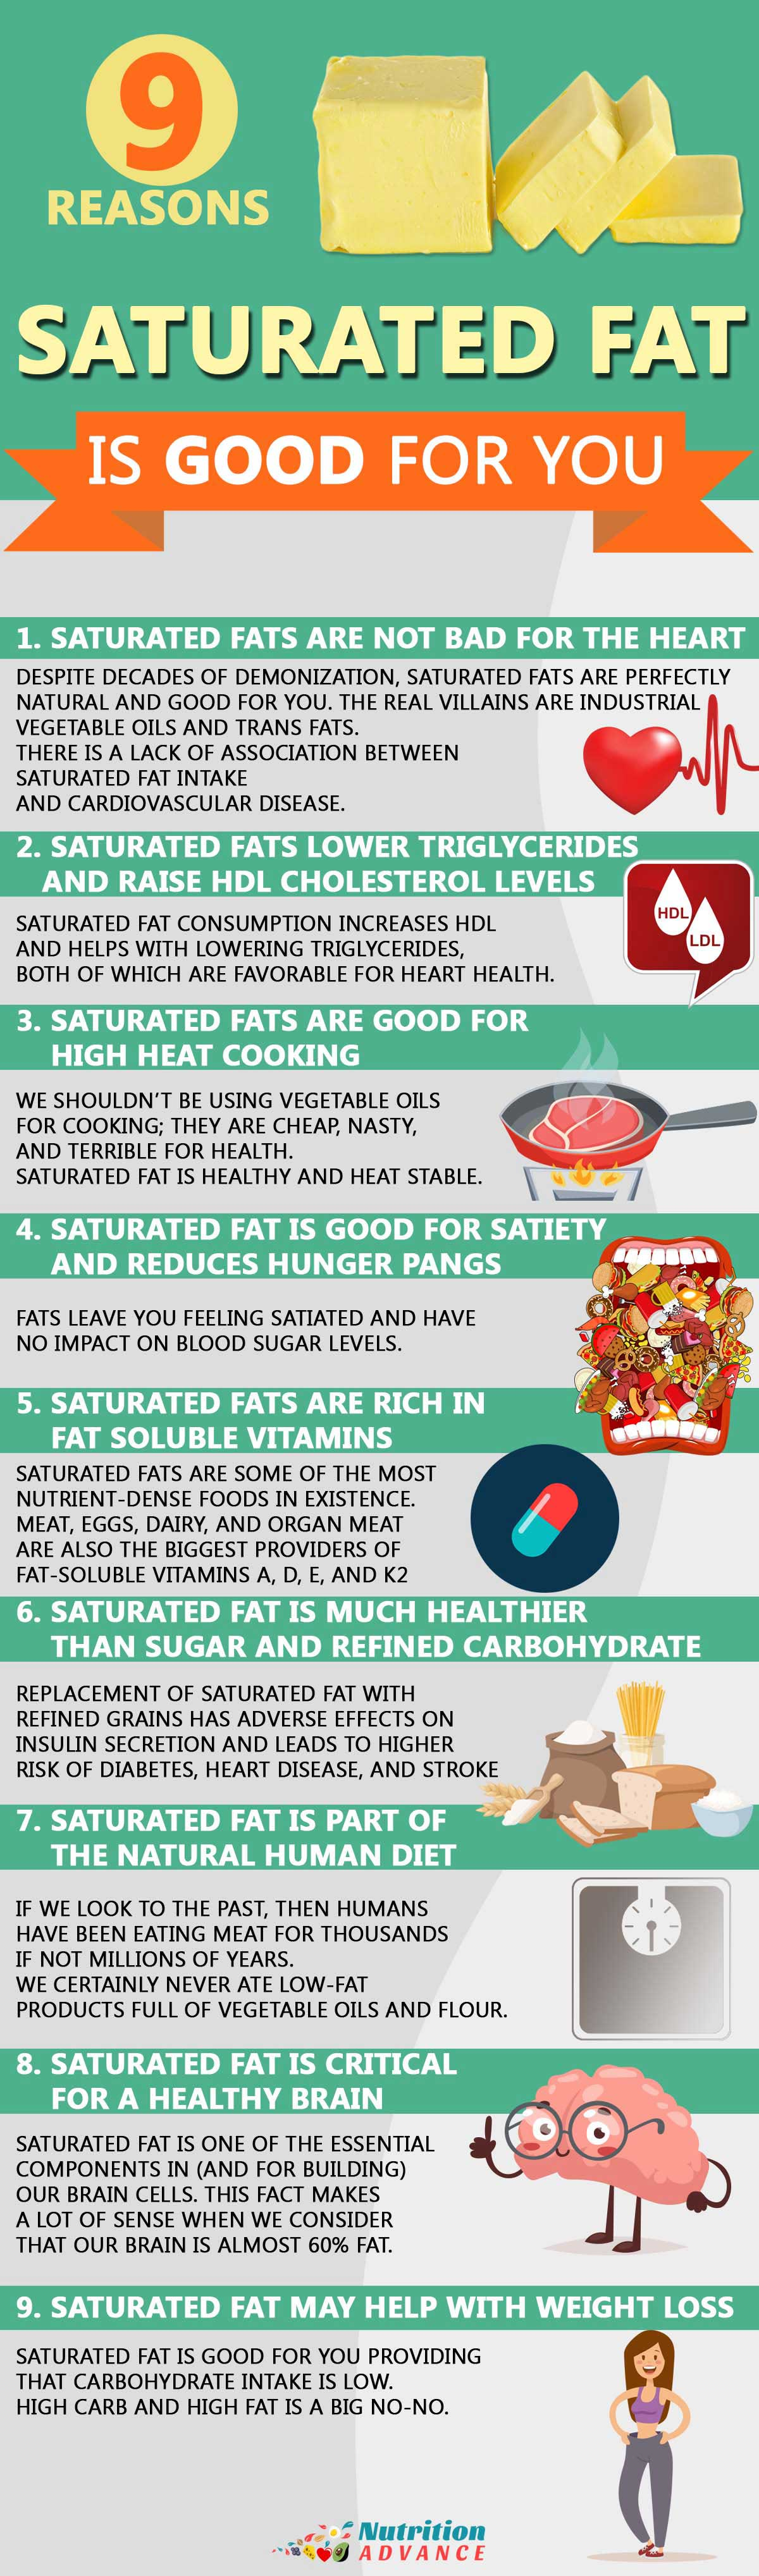 Infographic - 9 reasons saturated fat is good for you.